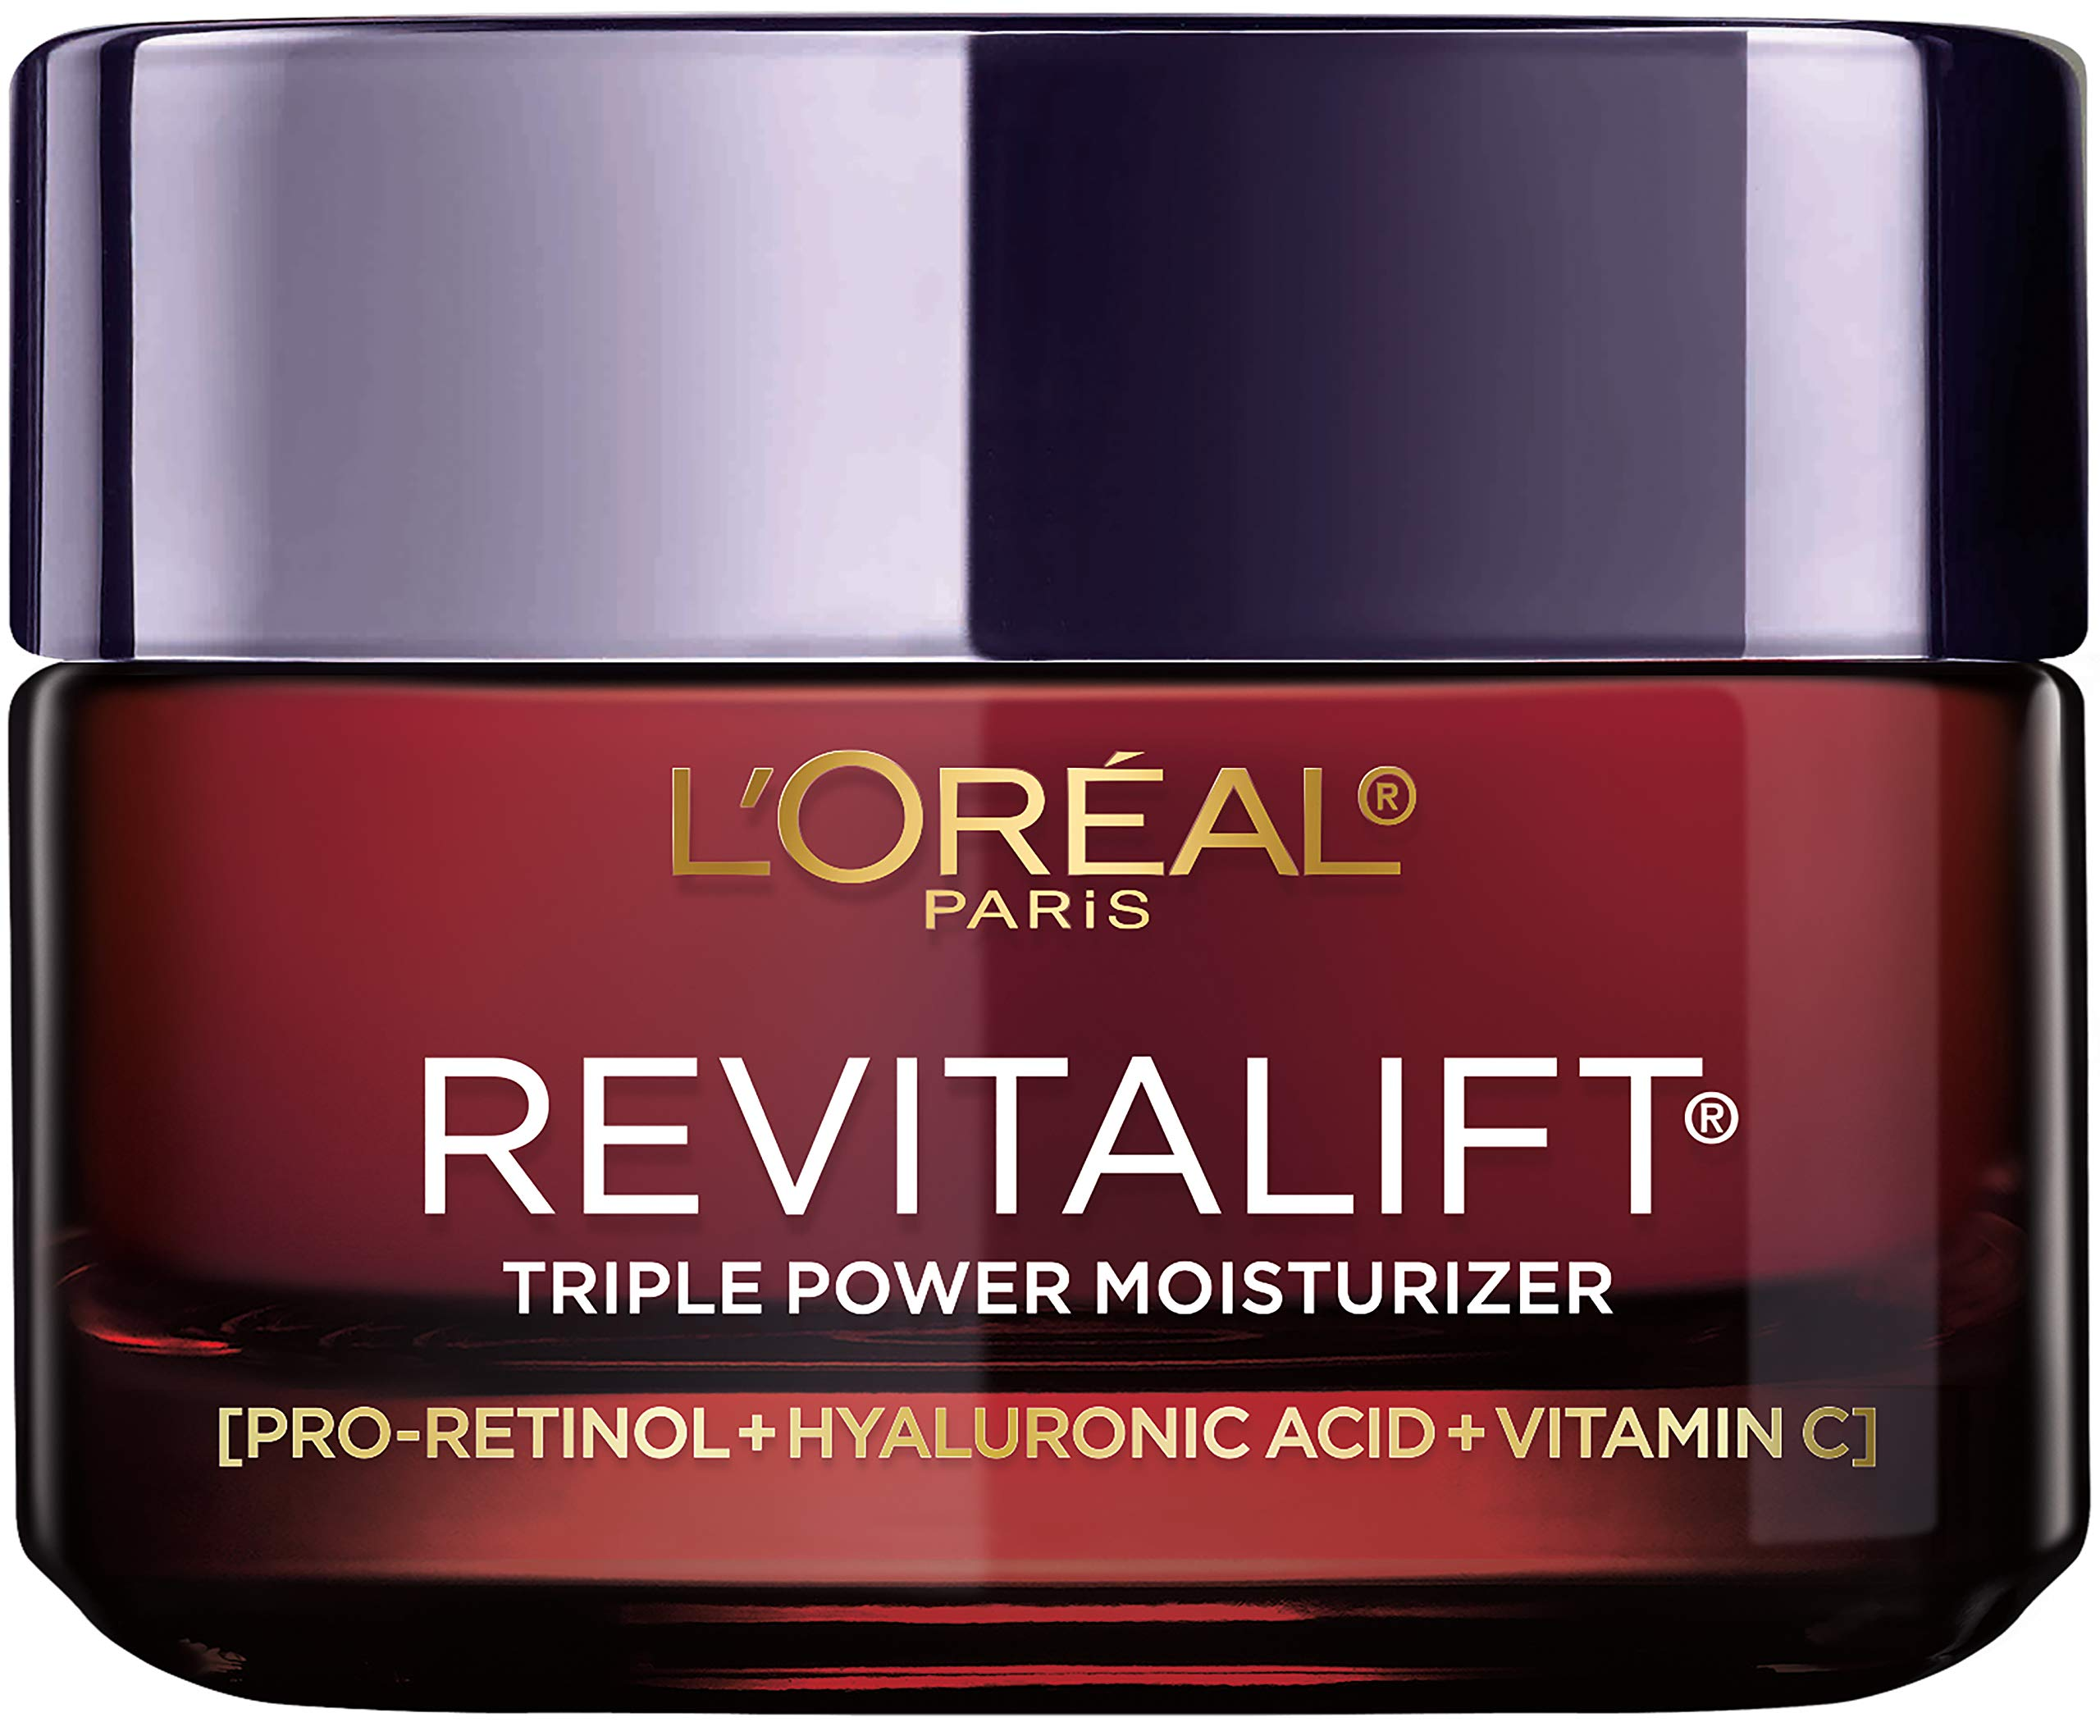 Face Moisturizer by L'Oreal Paris Skin Care I Revitalift Triple Power Anti-Aging Face Cream with Pro Retinol, Hyaluronic Acid and Vitamin C I 1.7 oz. by L'Oreal Paris